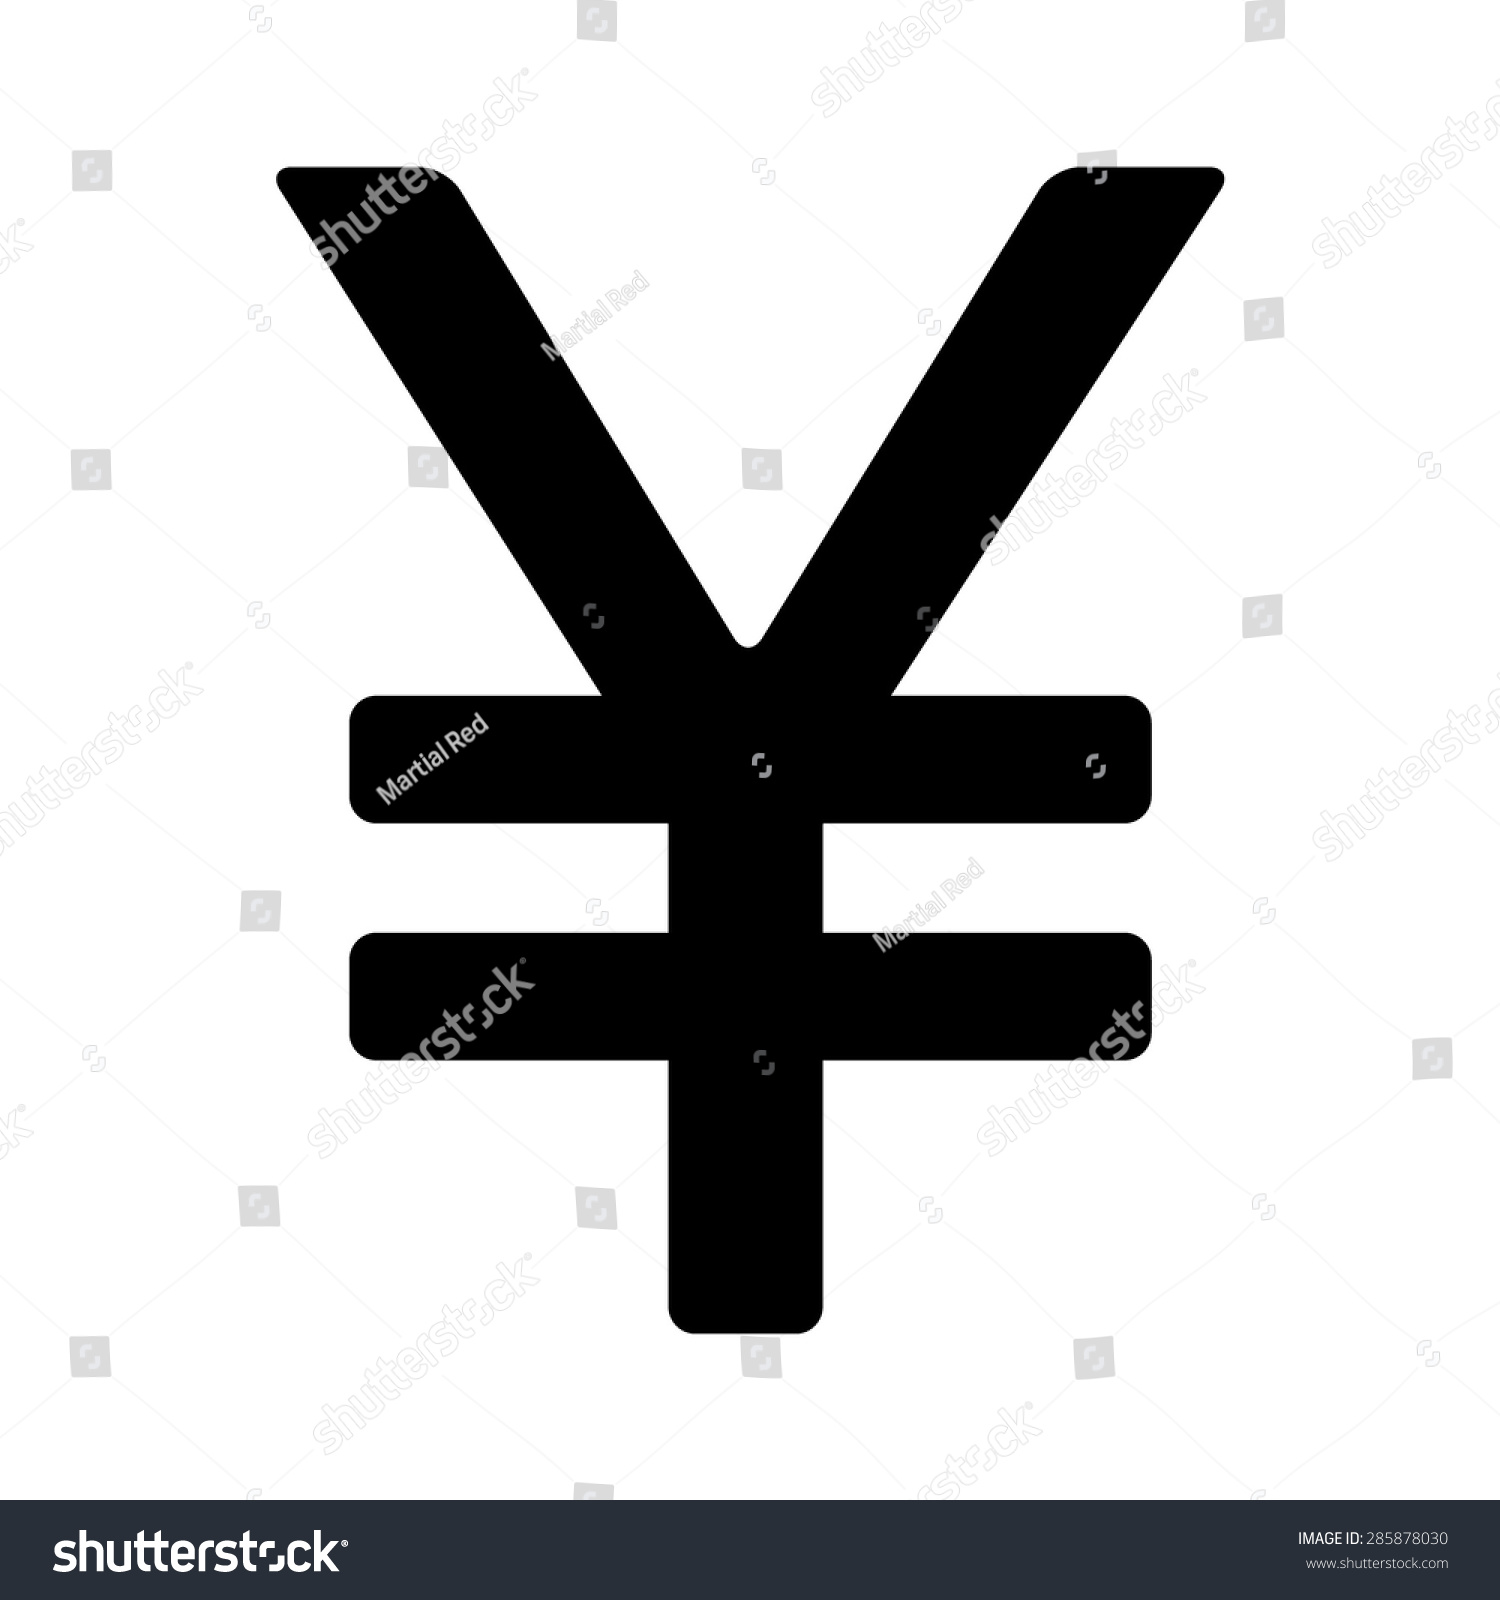 Japanese yen chinese yuan currency symbol stock vector 285878030 japanese yen or chinese yuan currency symbol flat icon for apps and websites biocorpaavc Image collections